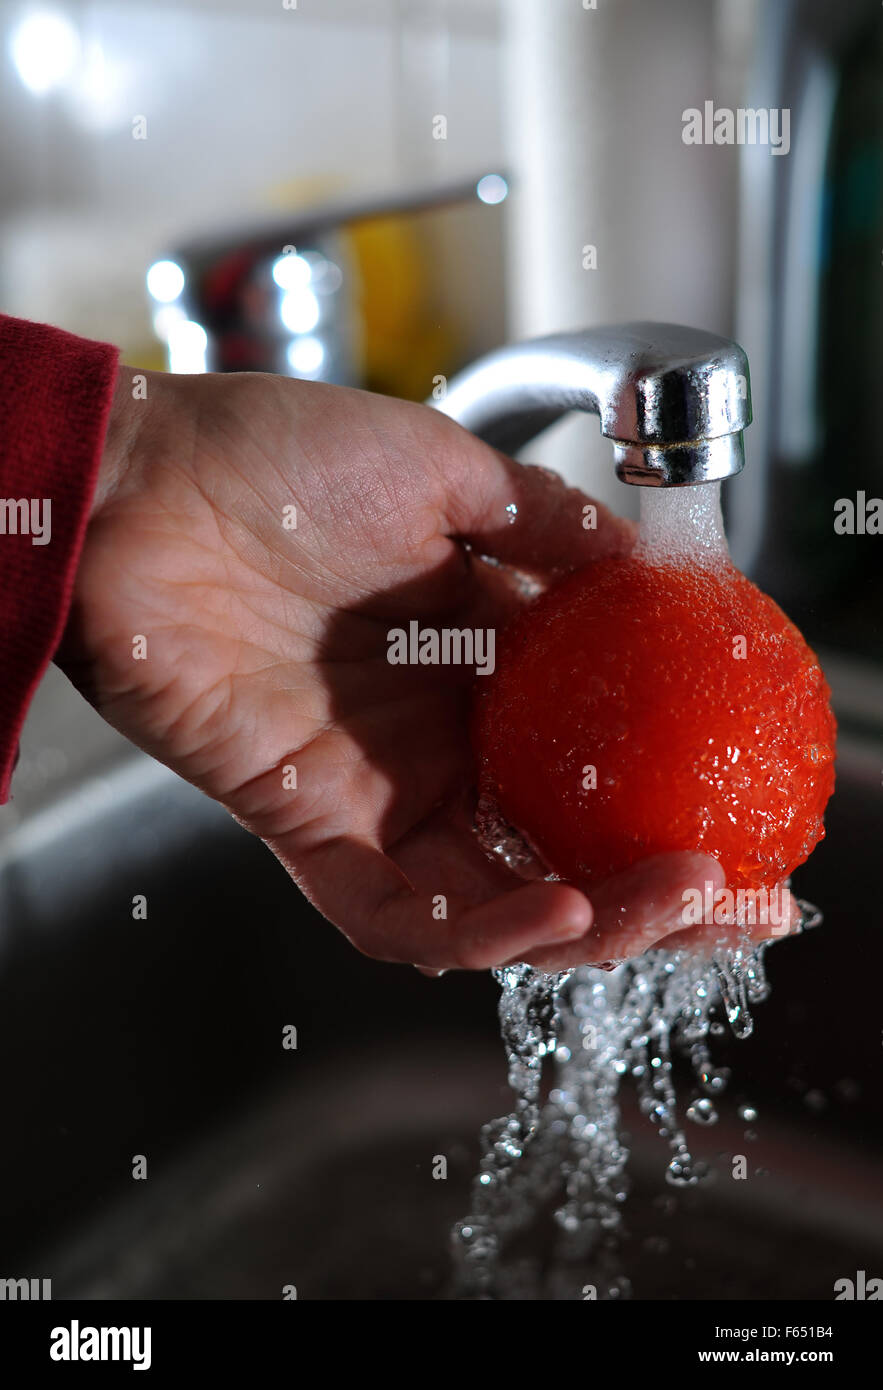 Illustration - A tomato is washed up with tap water in Dresden (Saxony), Germany, 11 March 2013. Photo: Thomas Eisenhuth Stock Photo